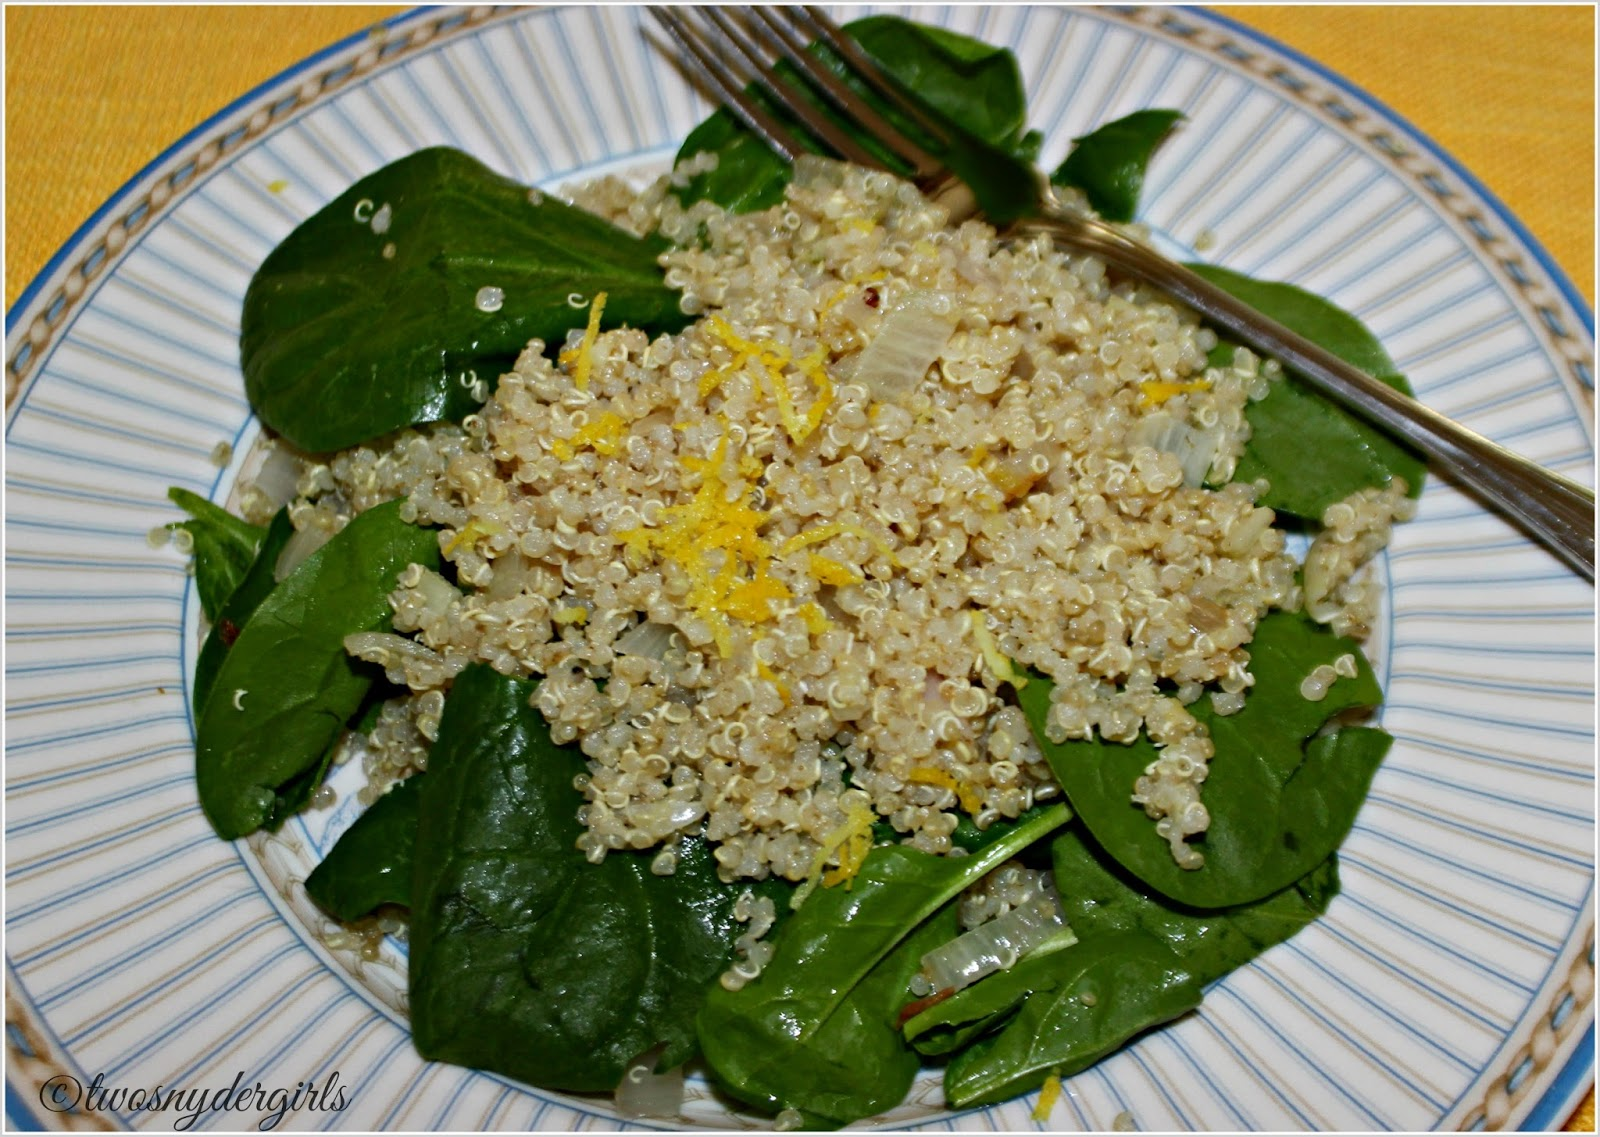 Grandparents & Grandchildren: Spinach and Quinoa Salad